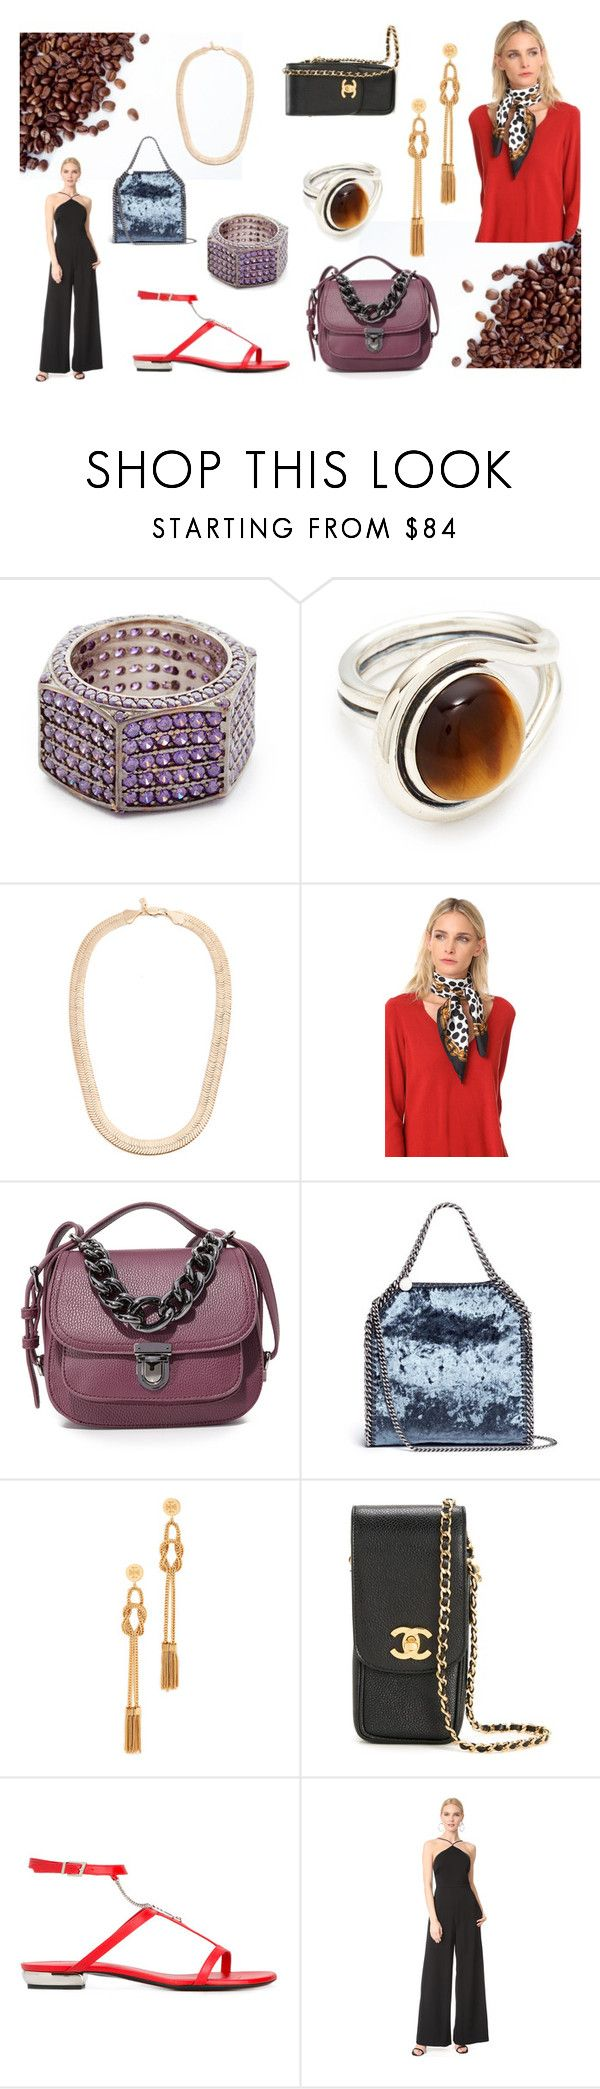 """""""Passion for fashion"""" by justinallison ❤ liked on Polyvore featuring Joanna Laura Constantine, Pamela Love, Vanessa Mooney, Marc Jacobs, Deux Lux, STELLA McCARTNEY, Tory Burch, Chanel, La Perla and T By Alexander Wang"""